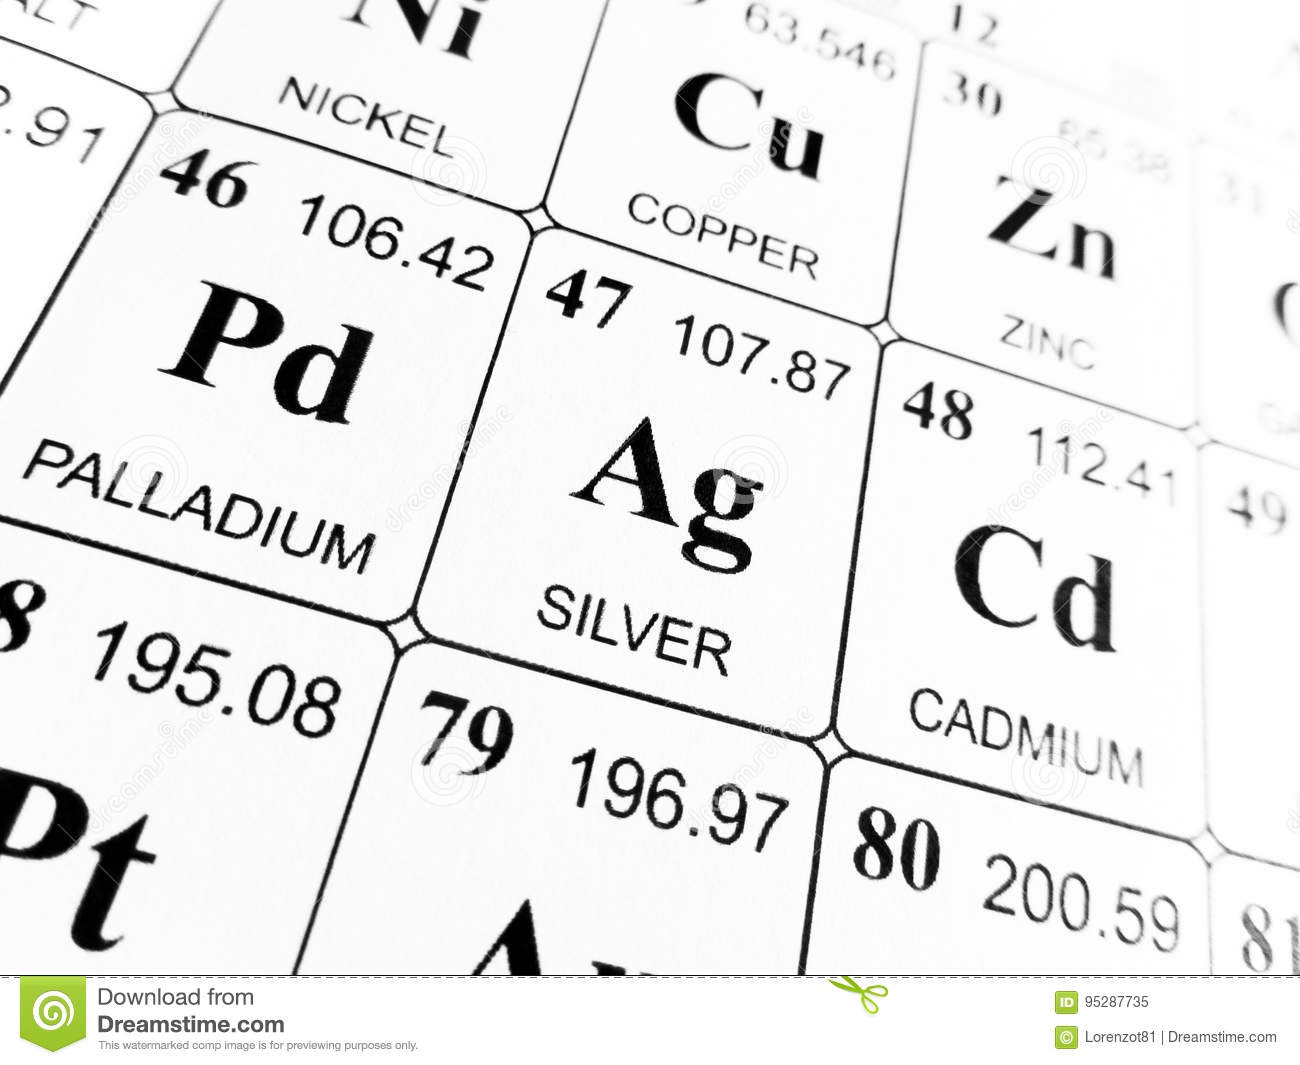 Silver on the periodic table of the elements stock image image of download comp urtaz